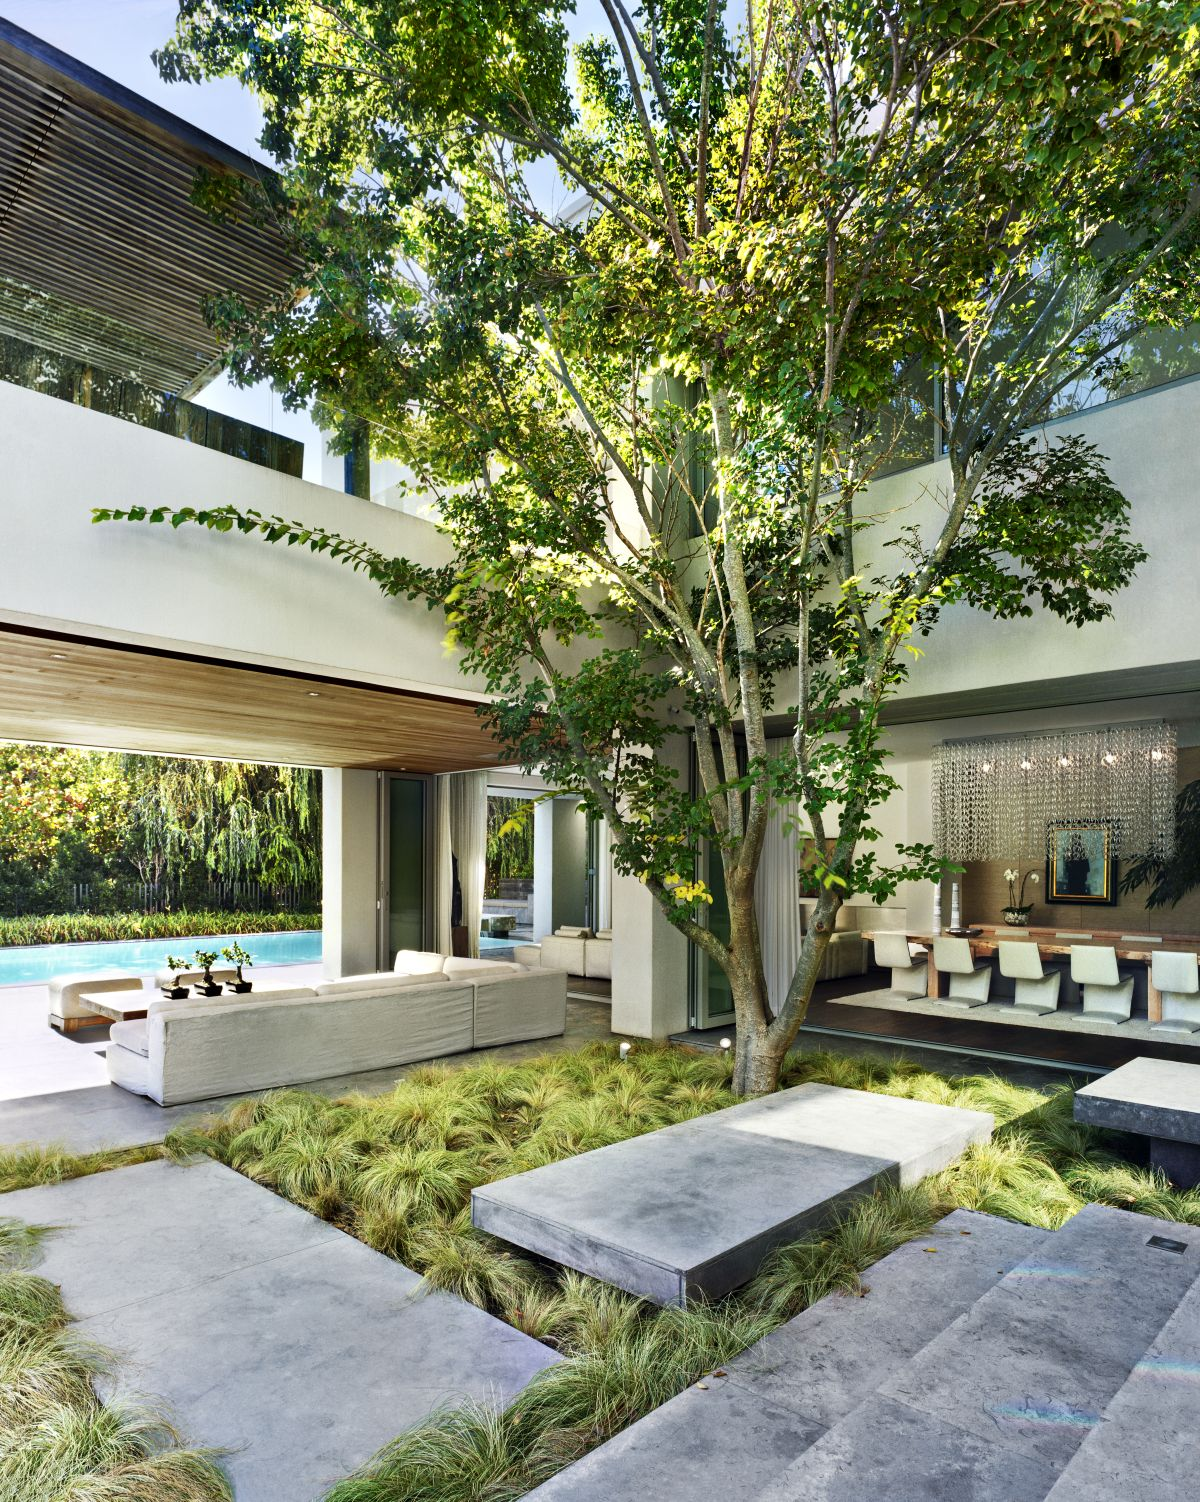 A large tree emphasizes the close connection between the house and its immediate surroundings